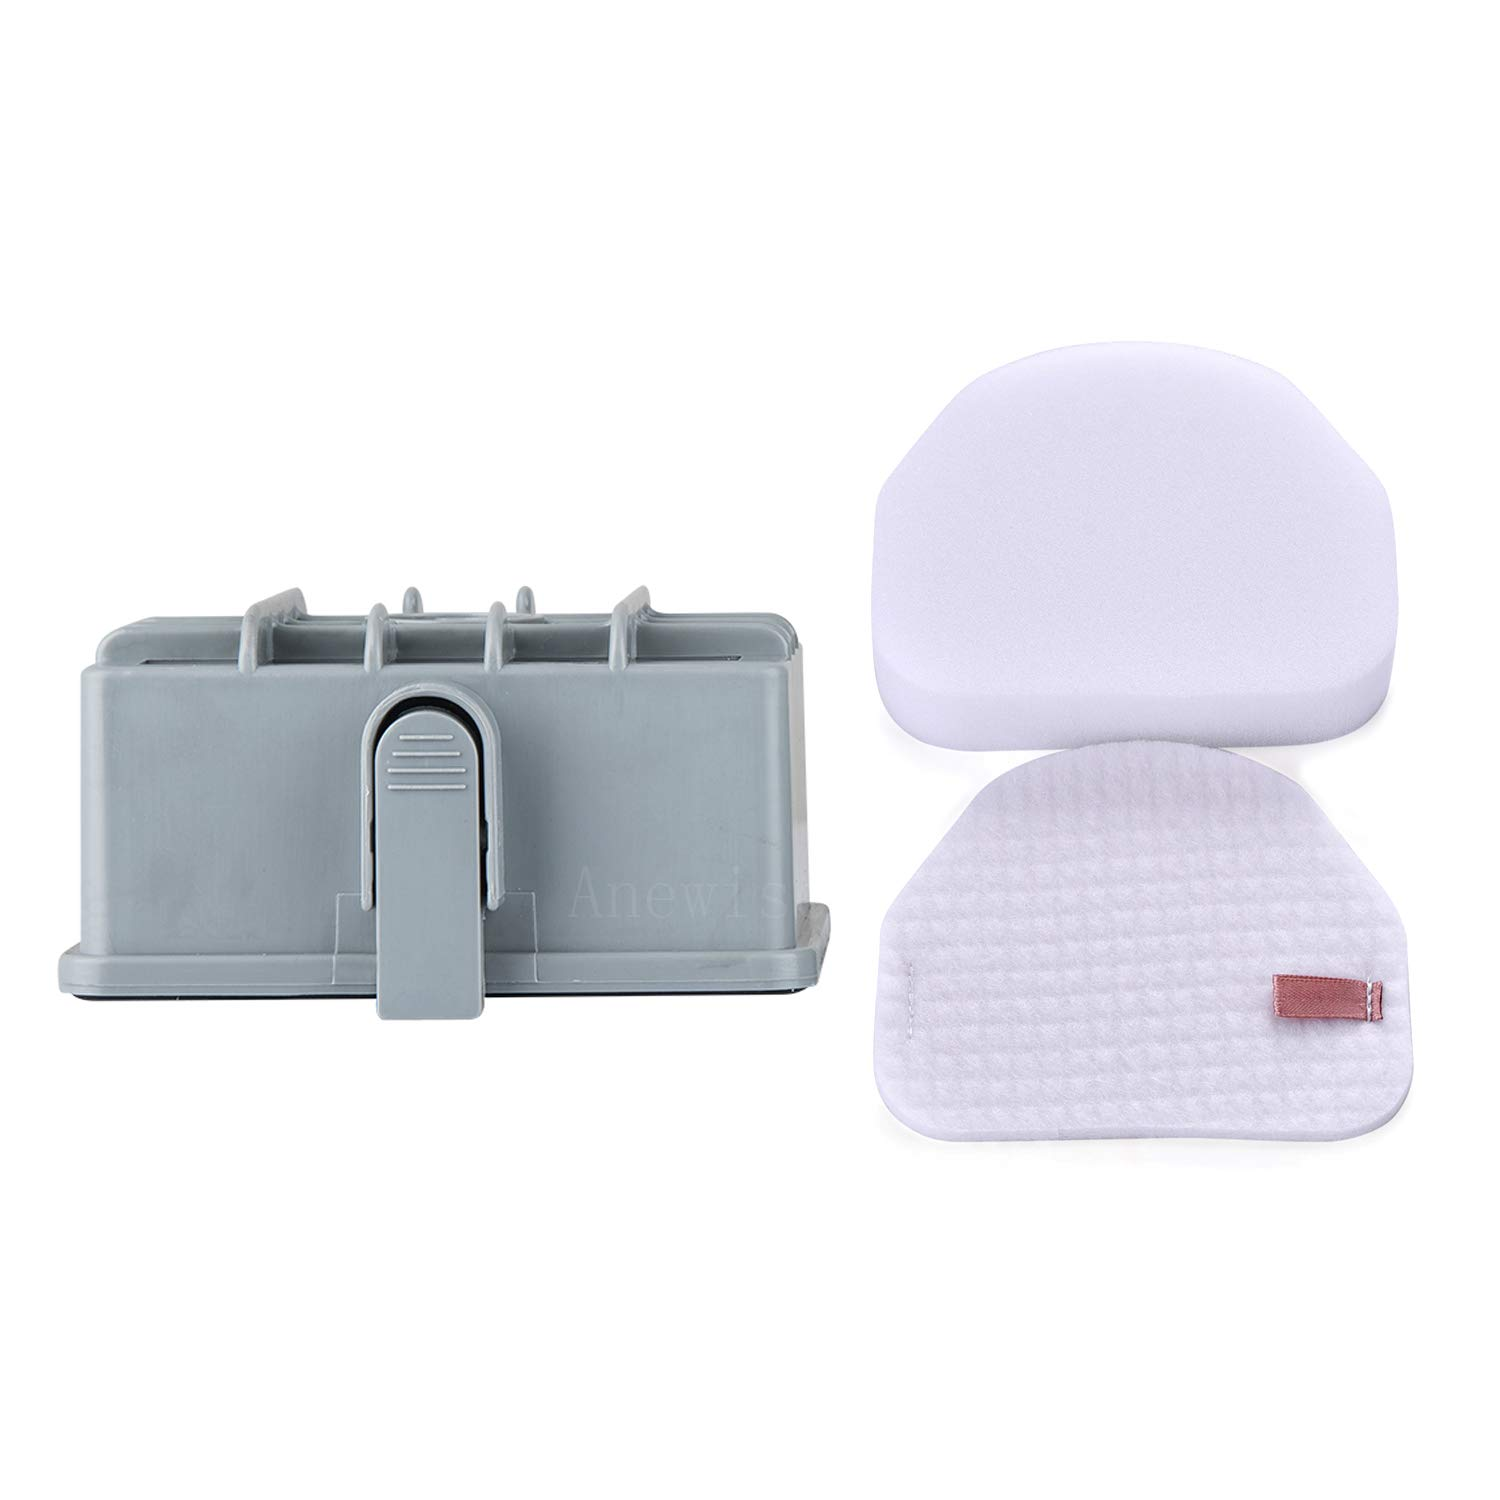 Anewise kit for Shark Rotator Nv450 Hepa Filter & Foam Filter (Containing 2 Foam Filter and 1 Hepa Filter), Compare to Part # Xff450 Xhf450 Small Size